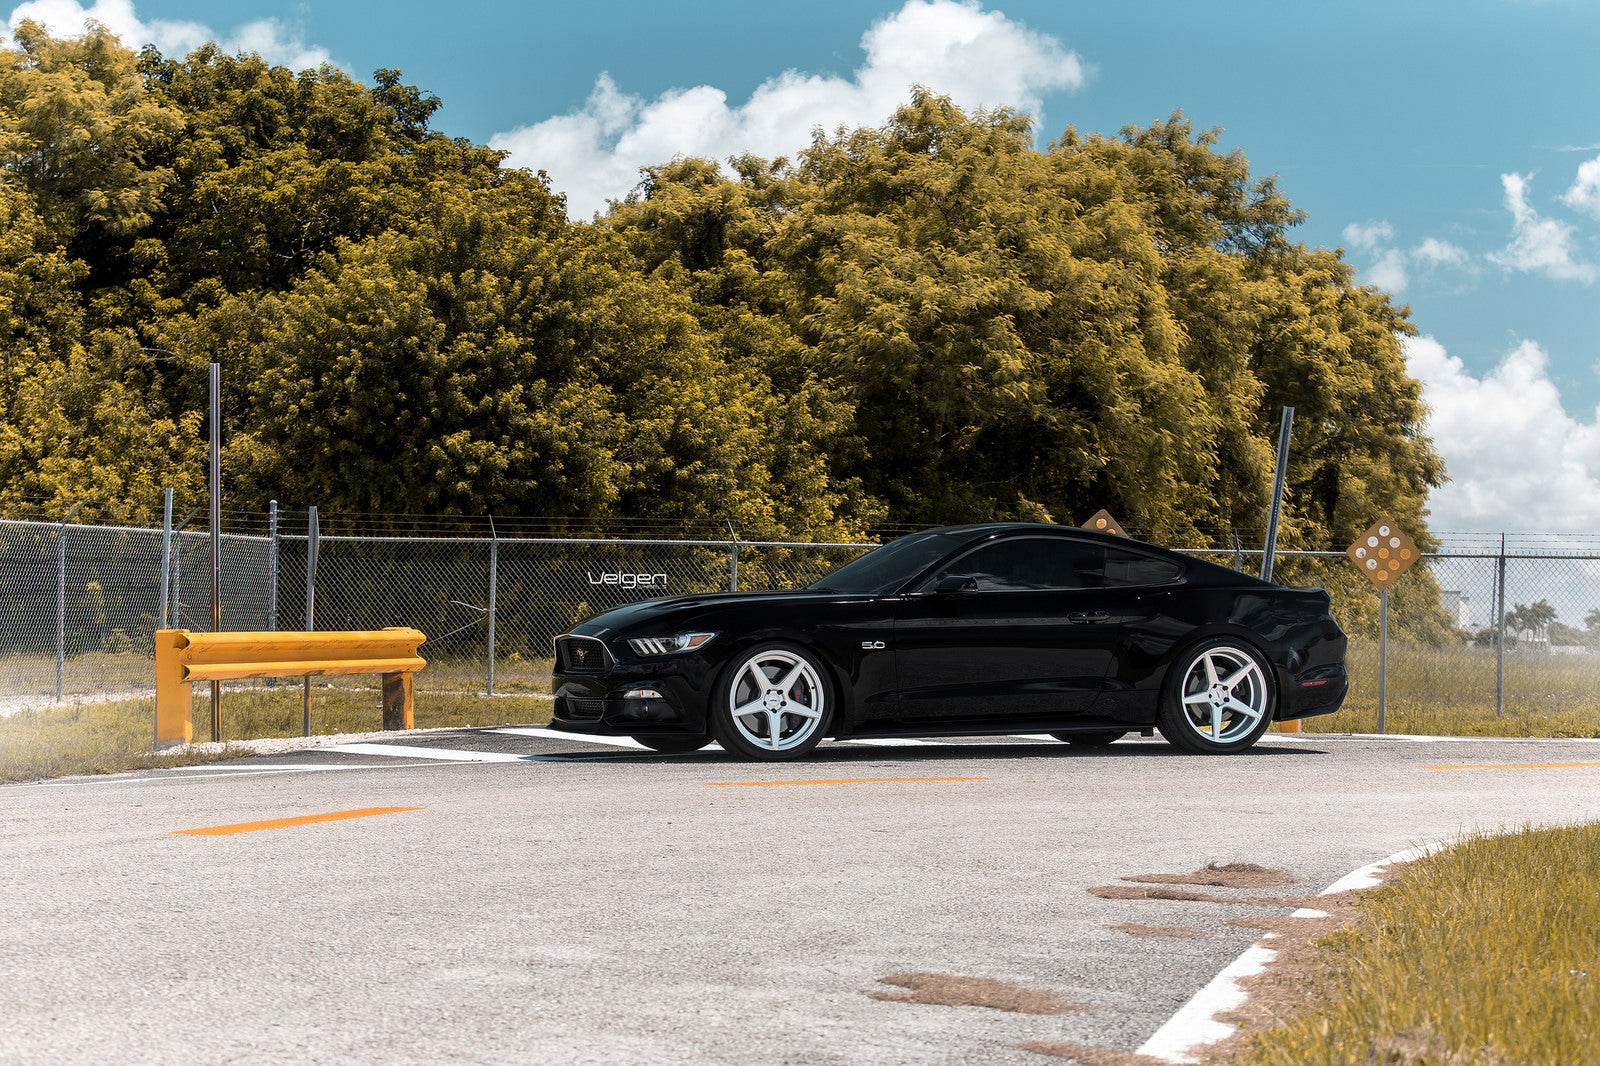 black-mustang-classic5-silver-3